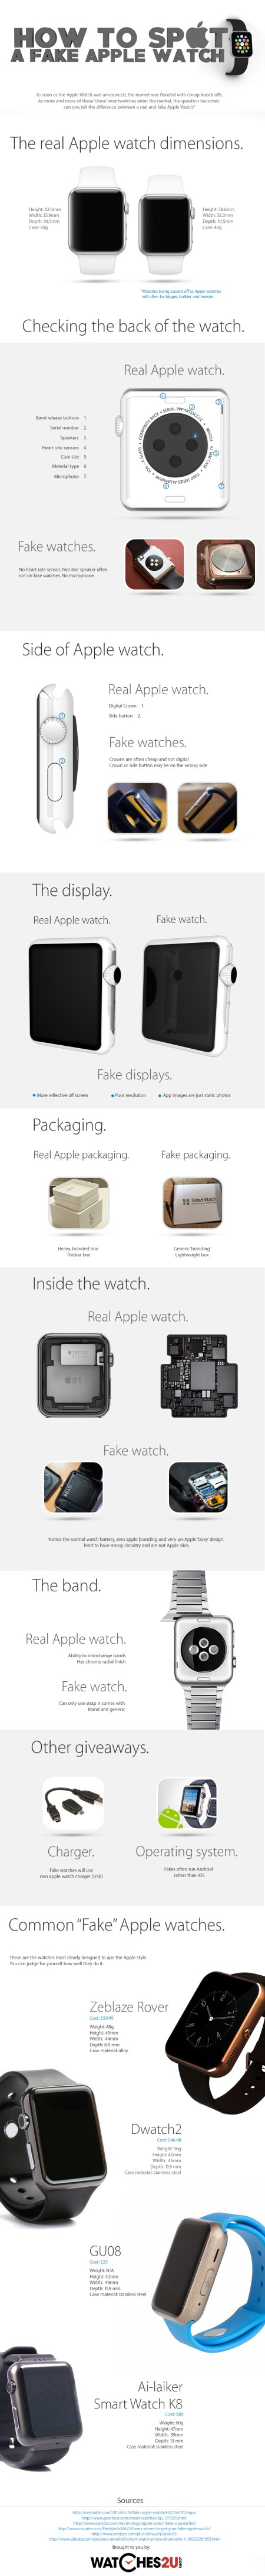 How To Spot A Fake Apple Watch